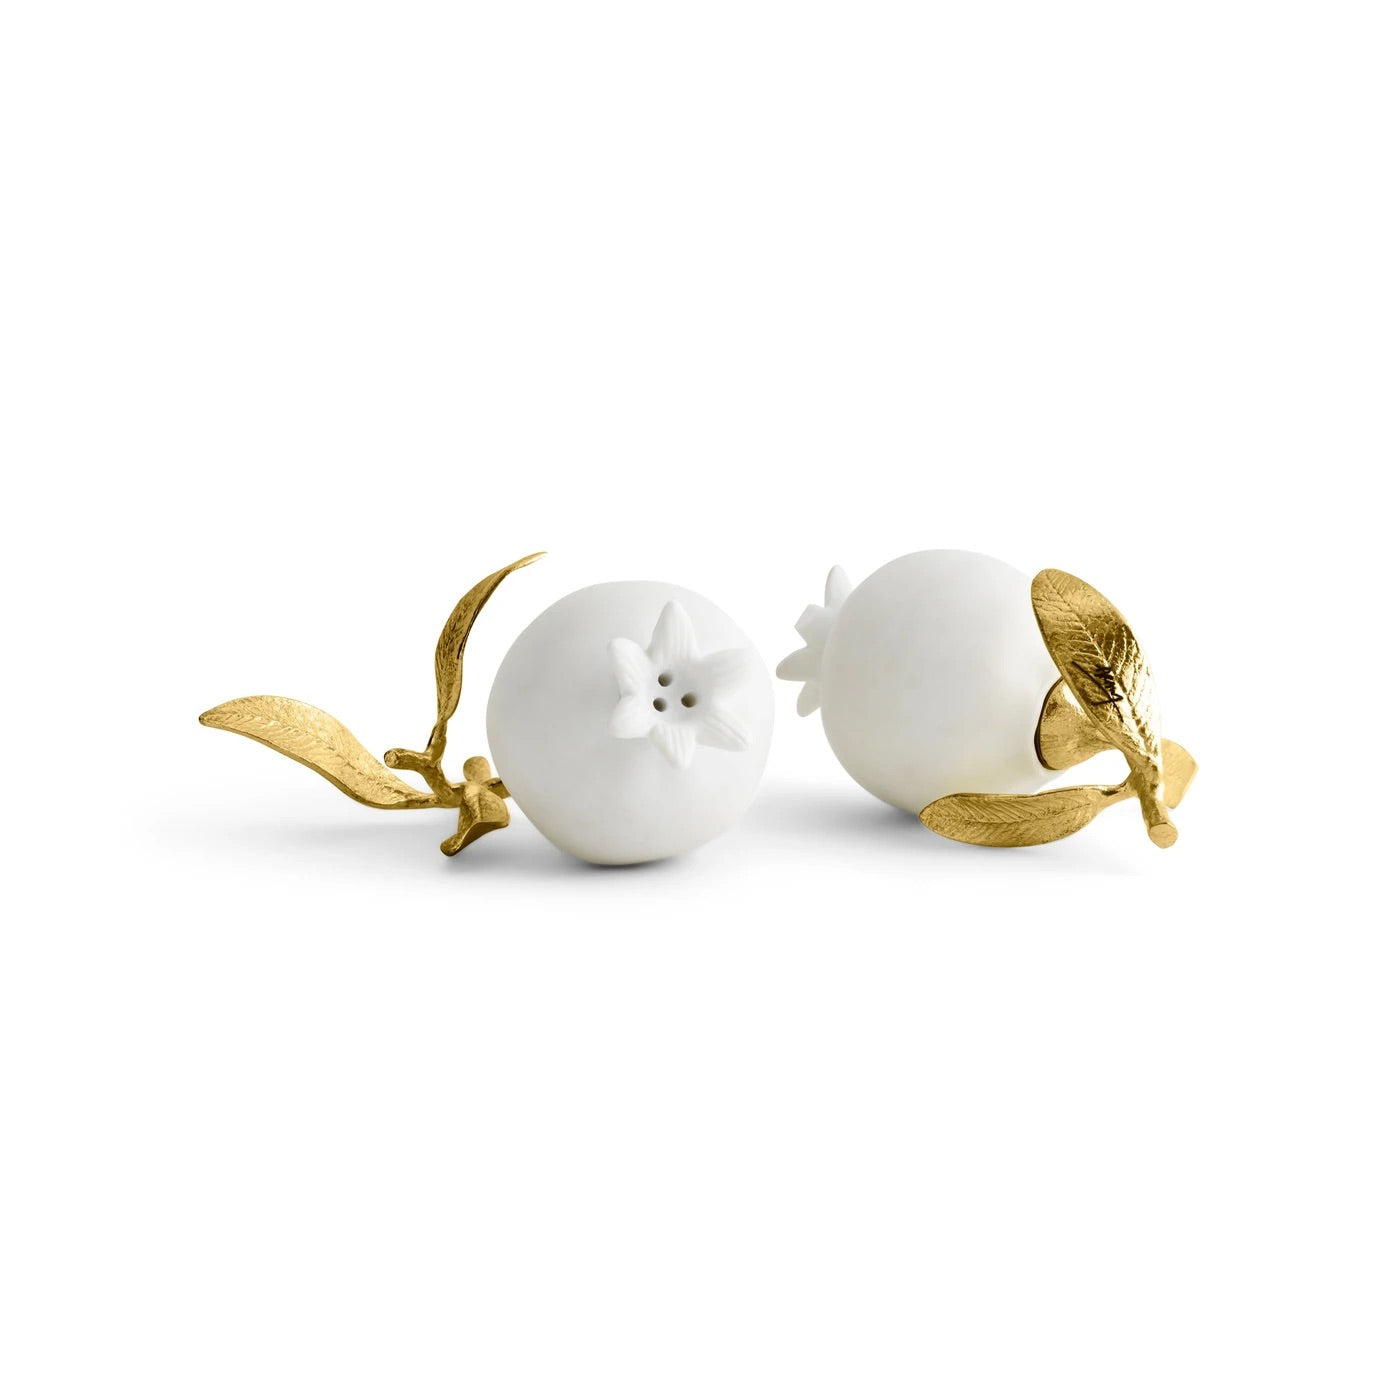 Michael Aram - Pomegranate Salt & Pepper Set